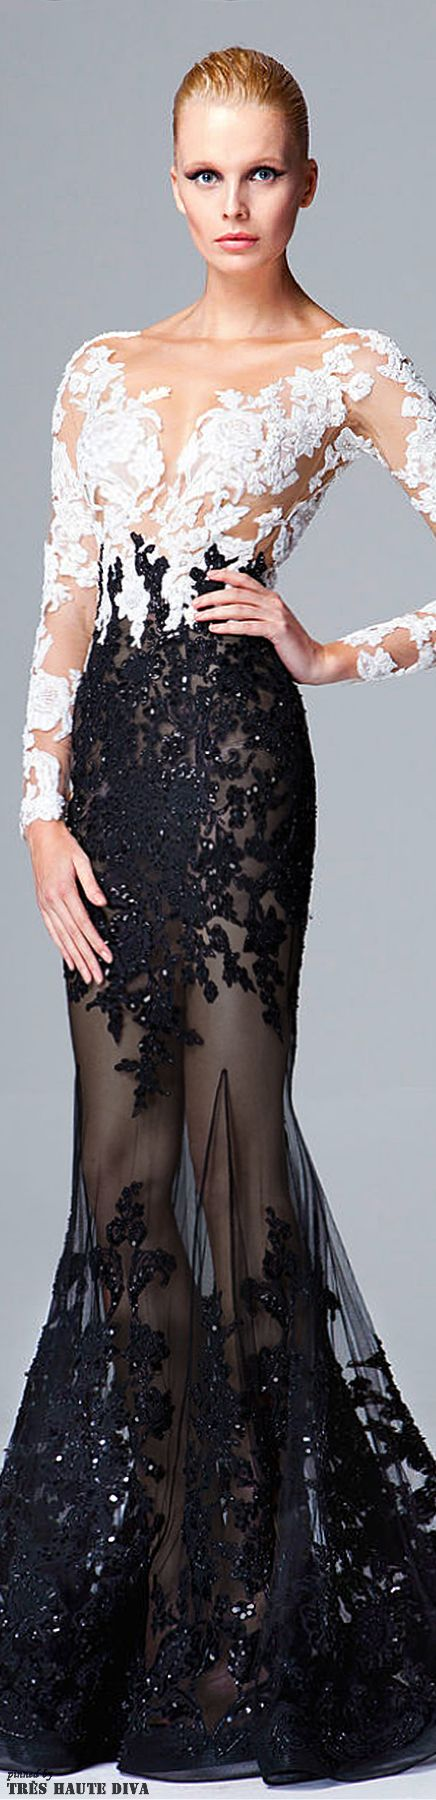 Zuhair Murad Pre-Fall 2014 /lnemnyi/lilllyy66/ Find more inspiration here: http://weheartit.com/nemenyilili/collections/22262382-like-a-lady